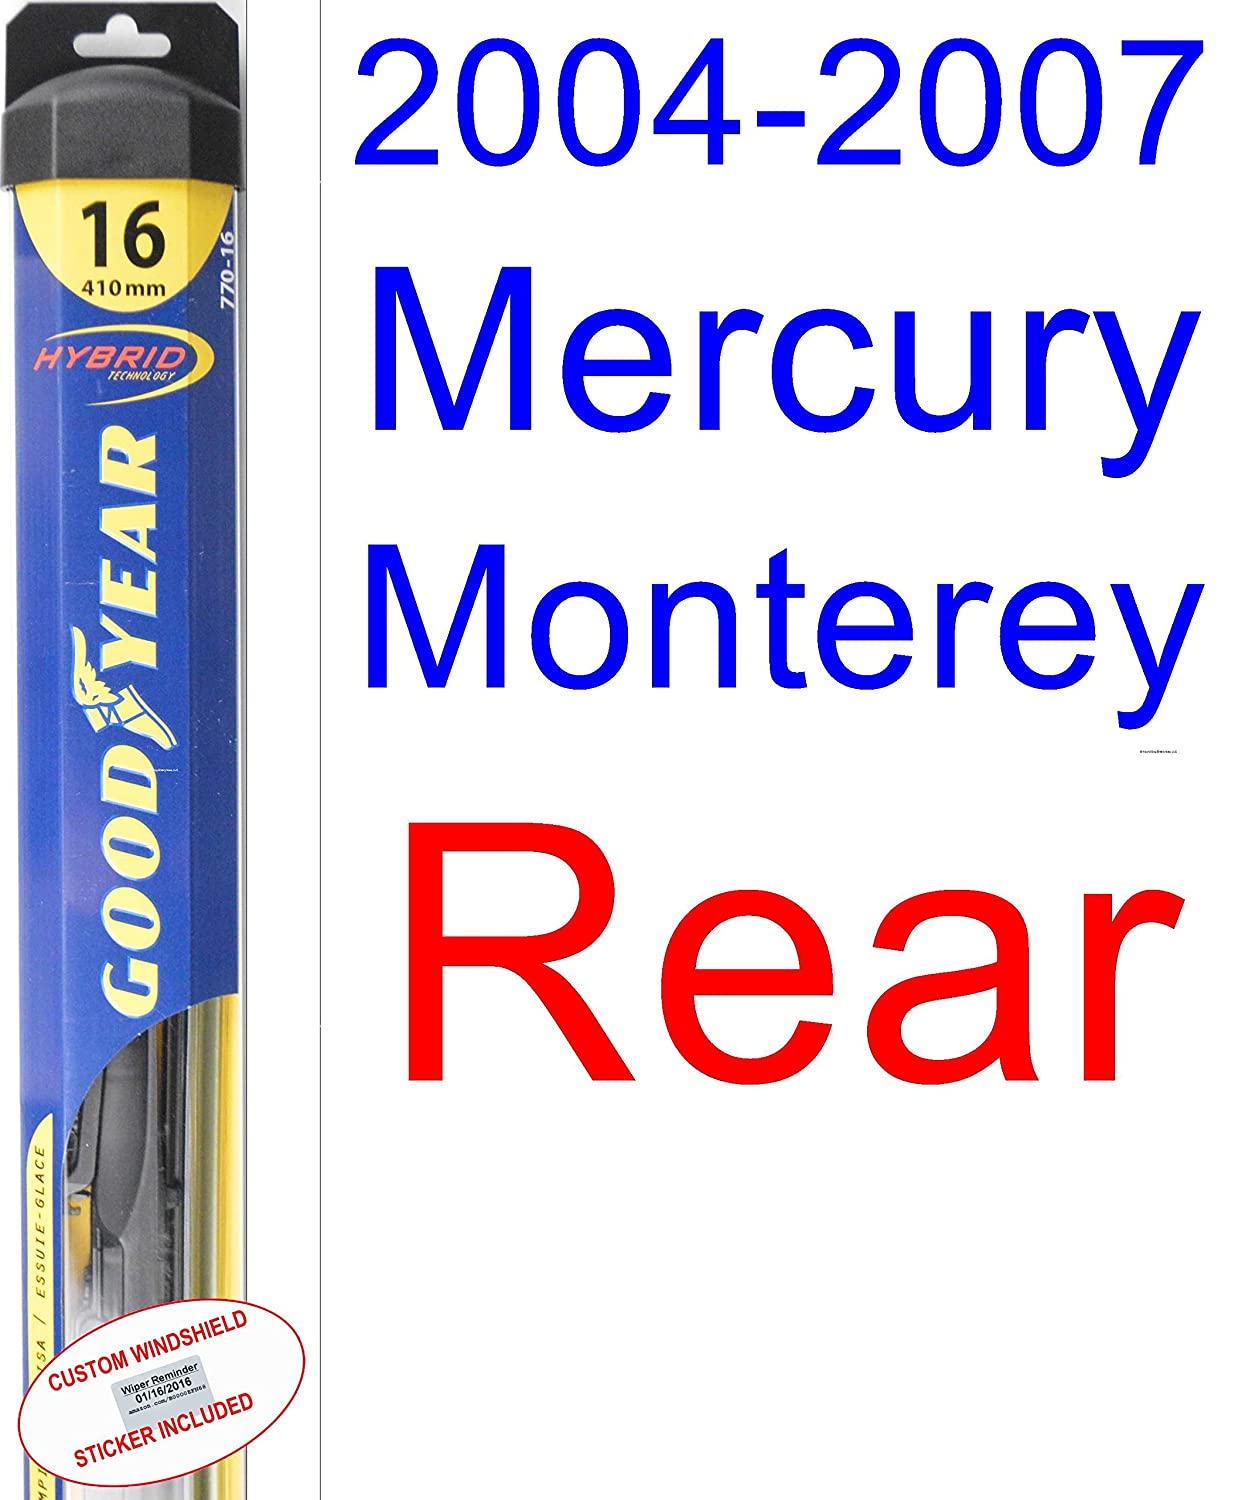 Amazon.com: 2004-2007 Mercury Monterey Wiper Blade (Rear) (Goodyear Wiper Blades-Hybrid) (2005,2006): Automotive